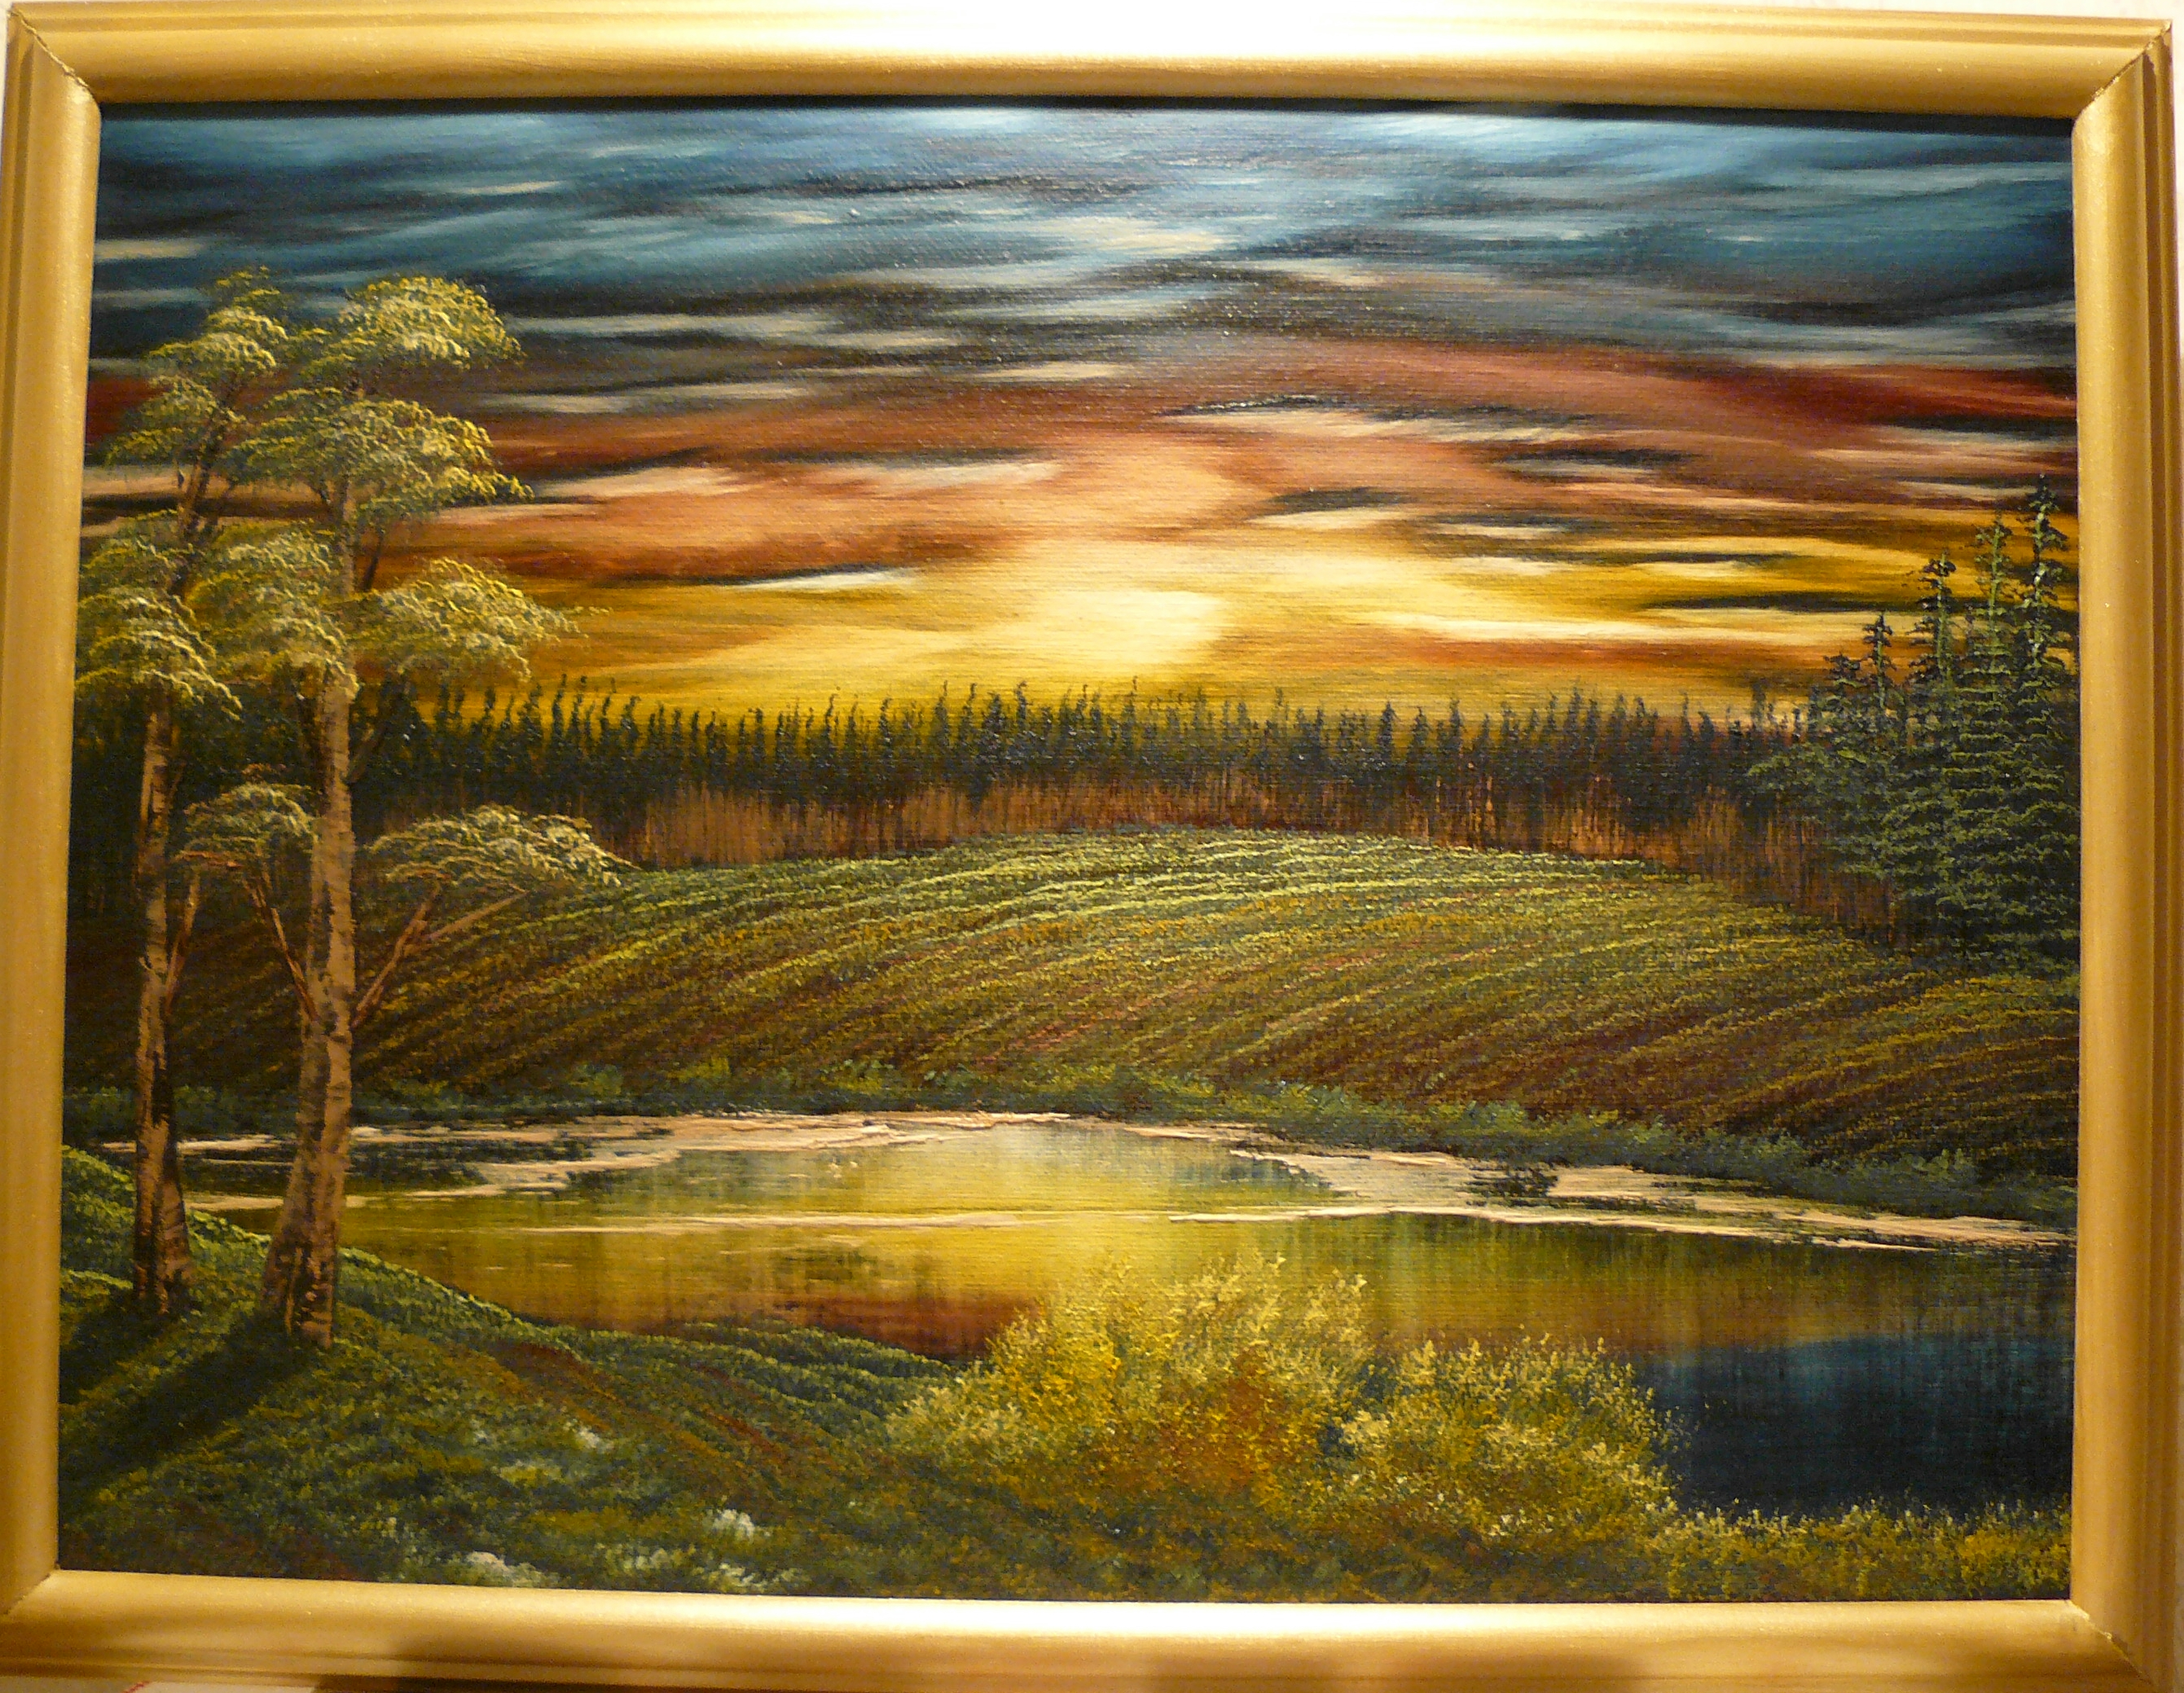 """Evening at the sunset"". 2012. Olja på duk, 40x50 cm."